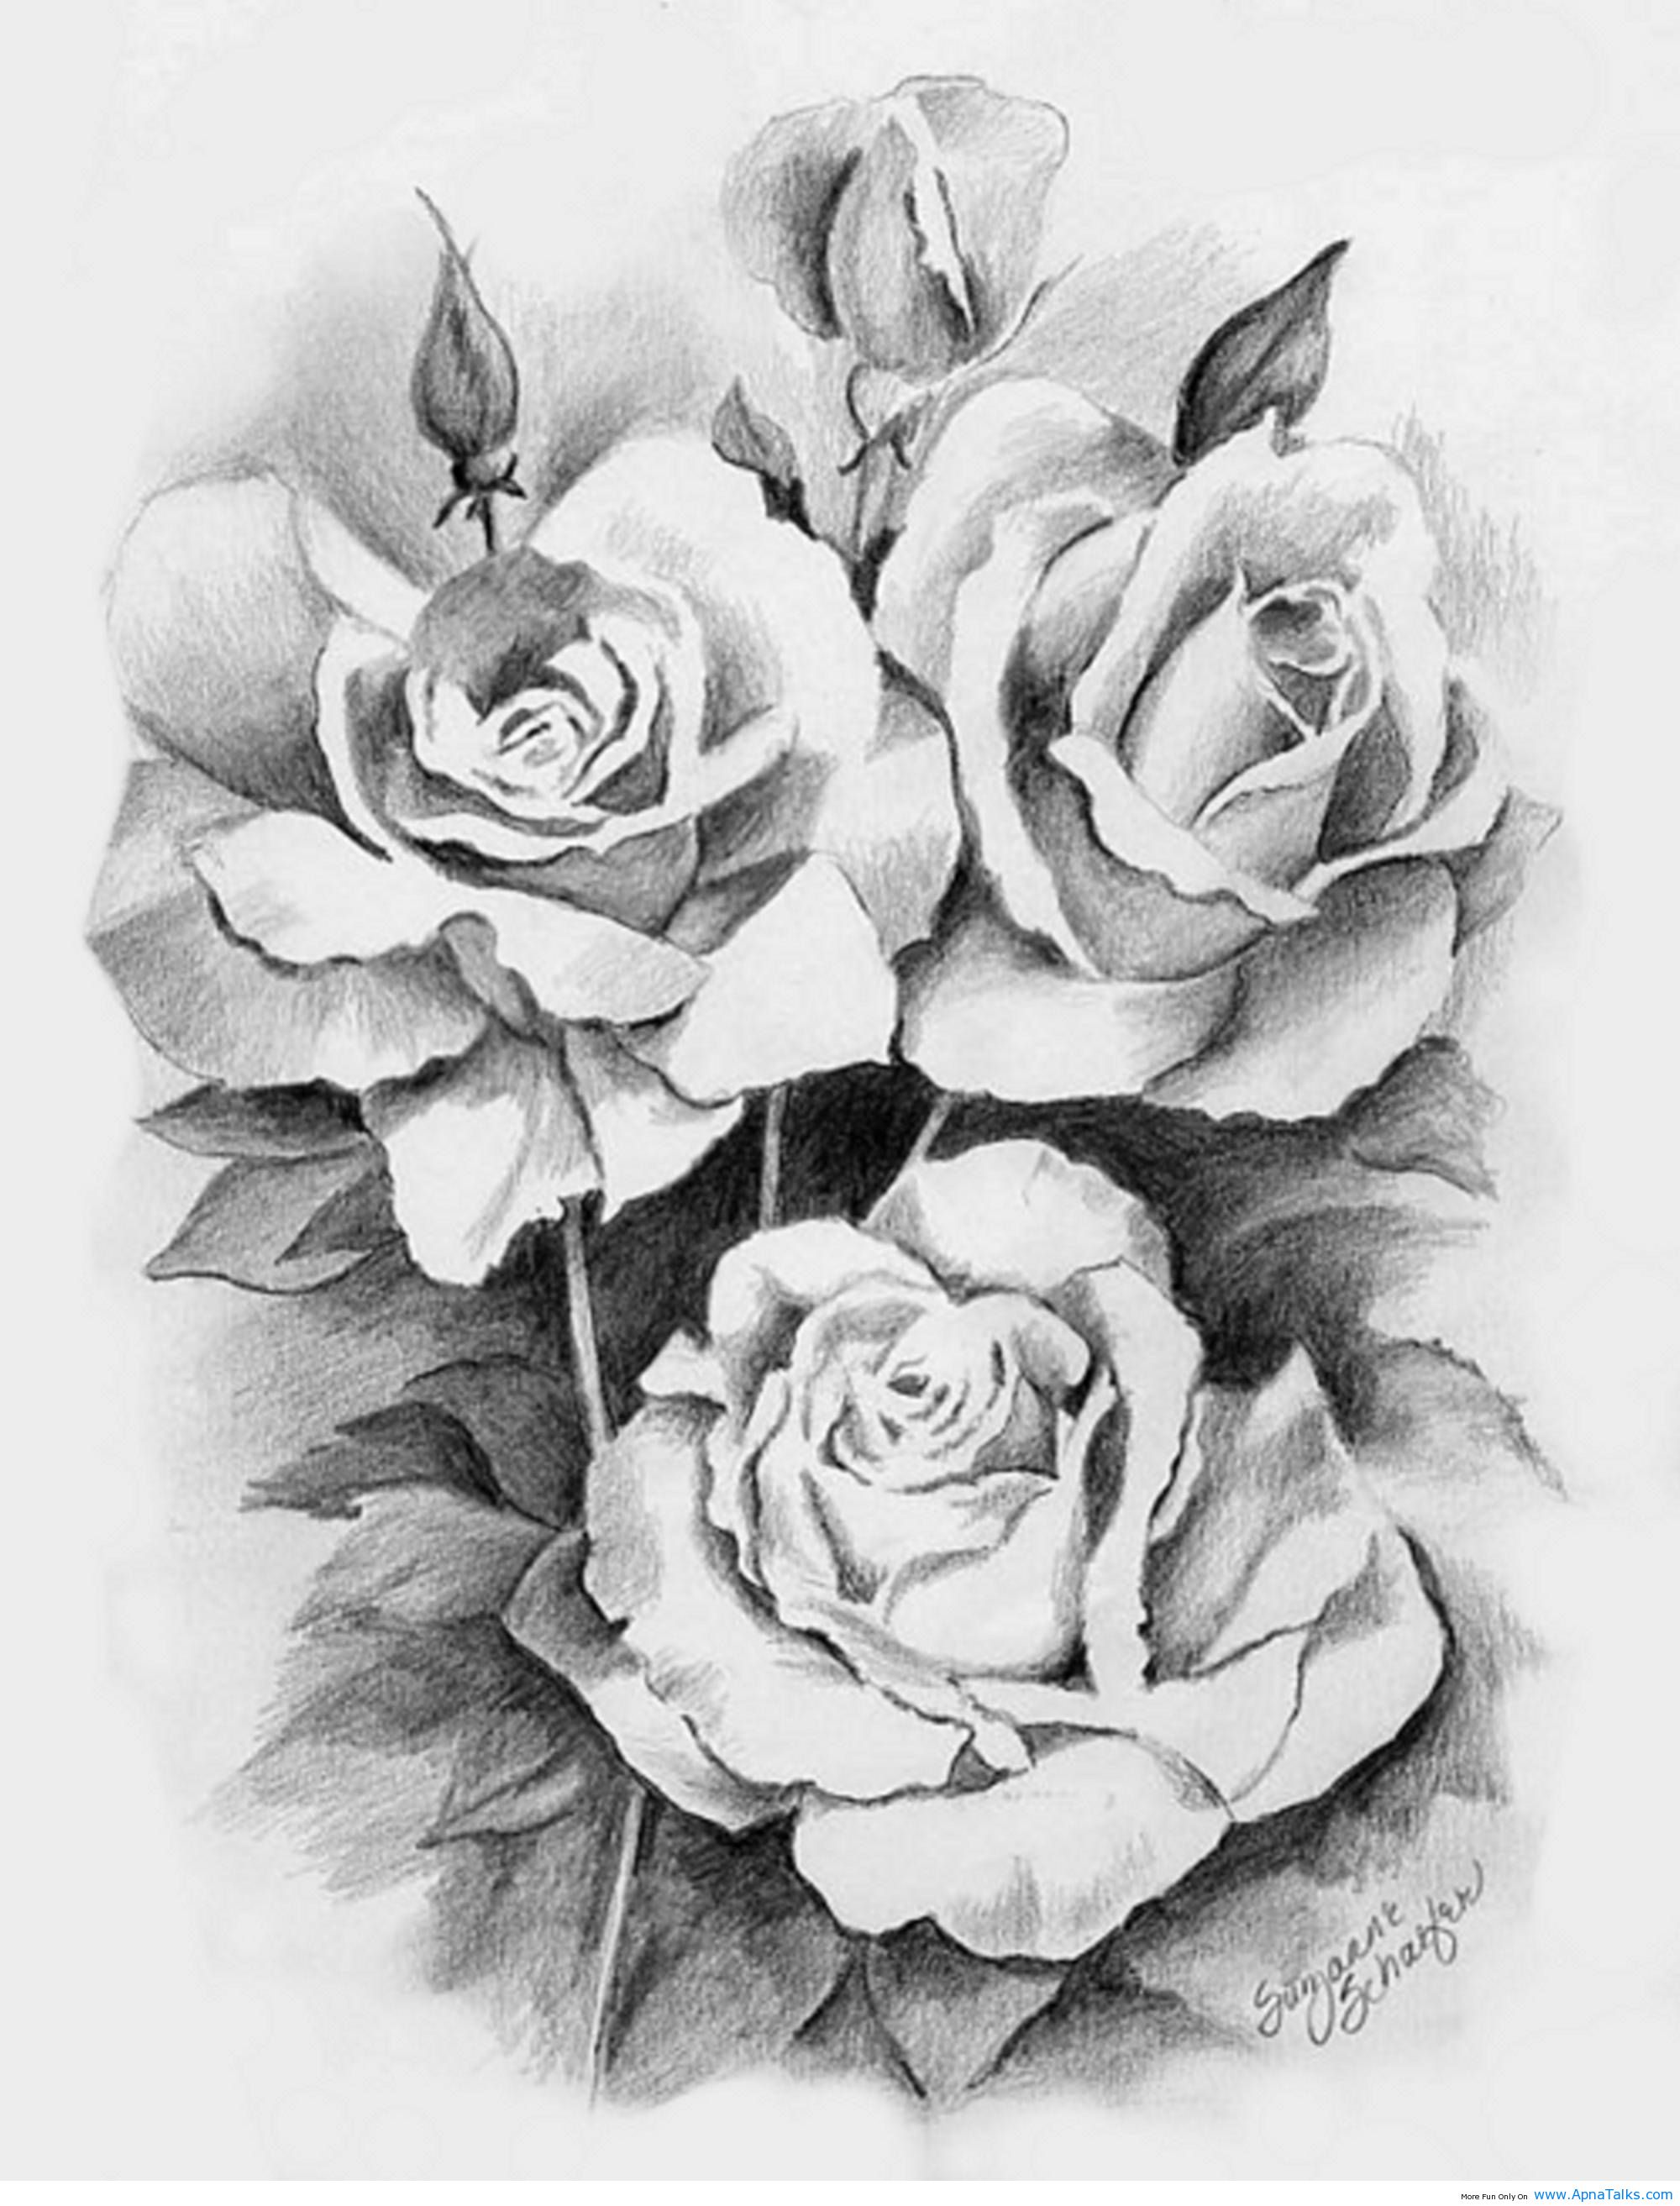 Drawn rose detail drawing Beautiful people!!! Tattoo help? people!!!